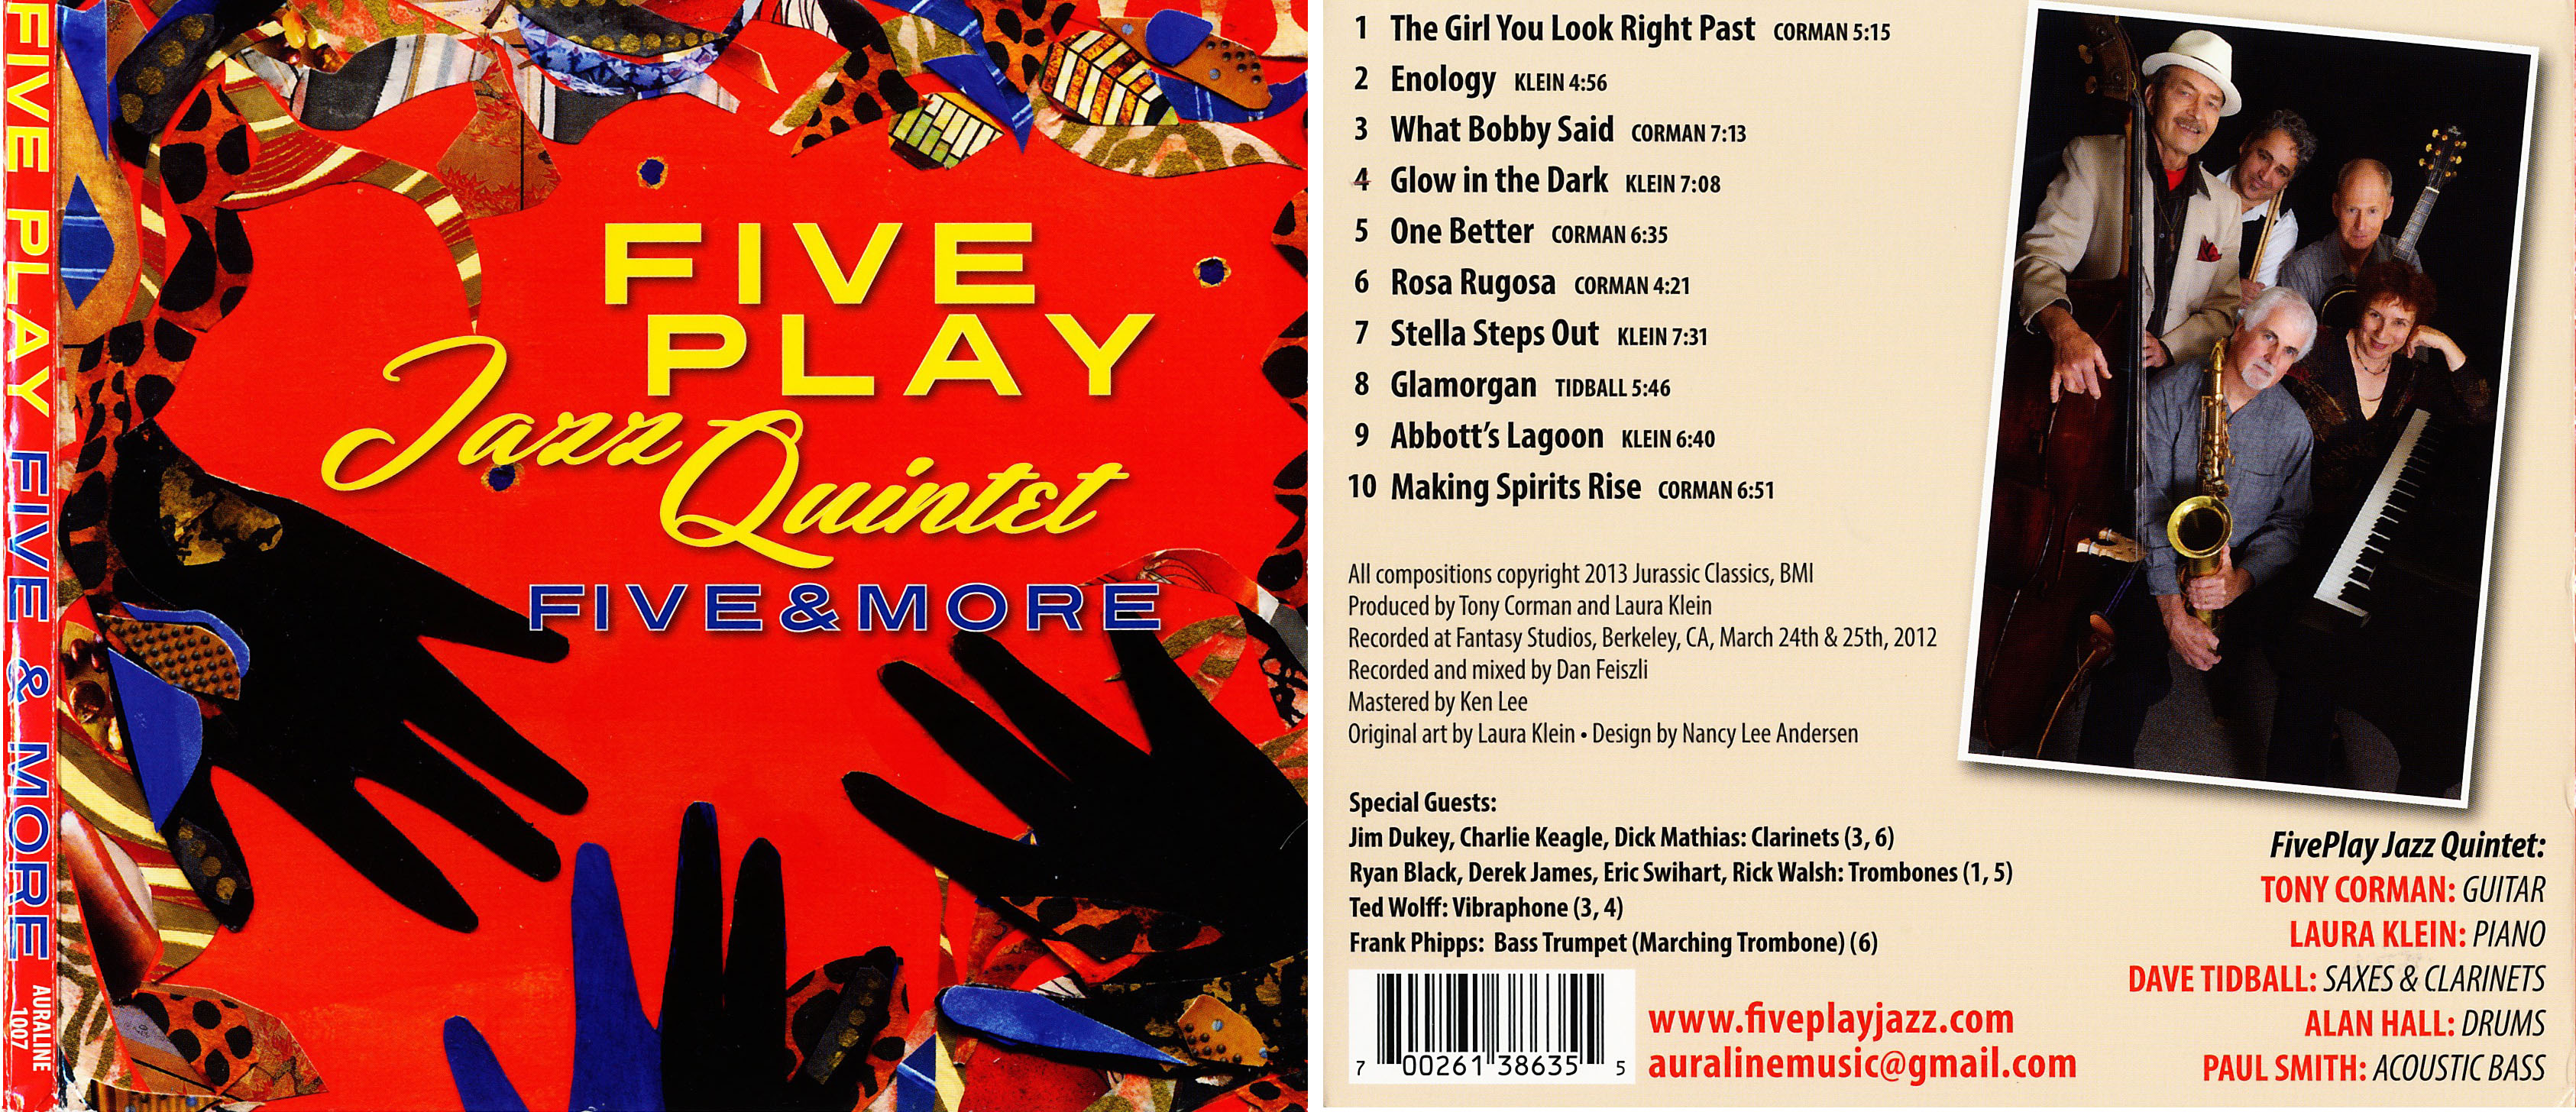 Five Play Jazz Quintet | Five & More